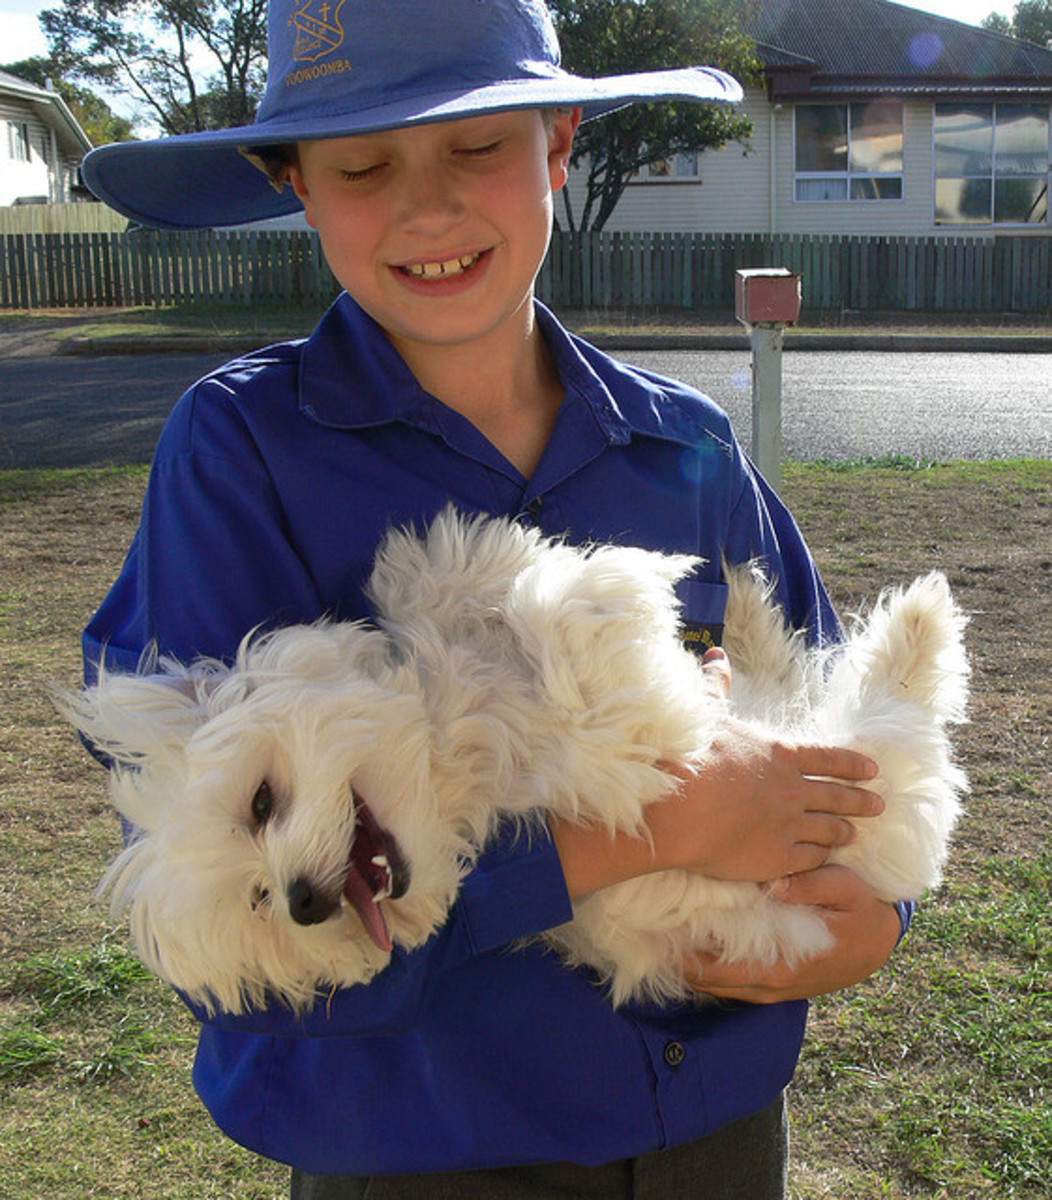 The Maltese is an excellent choice if you don't mind a dog who knows how to bark!